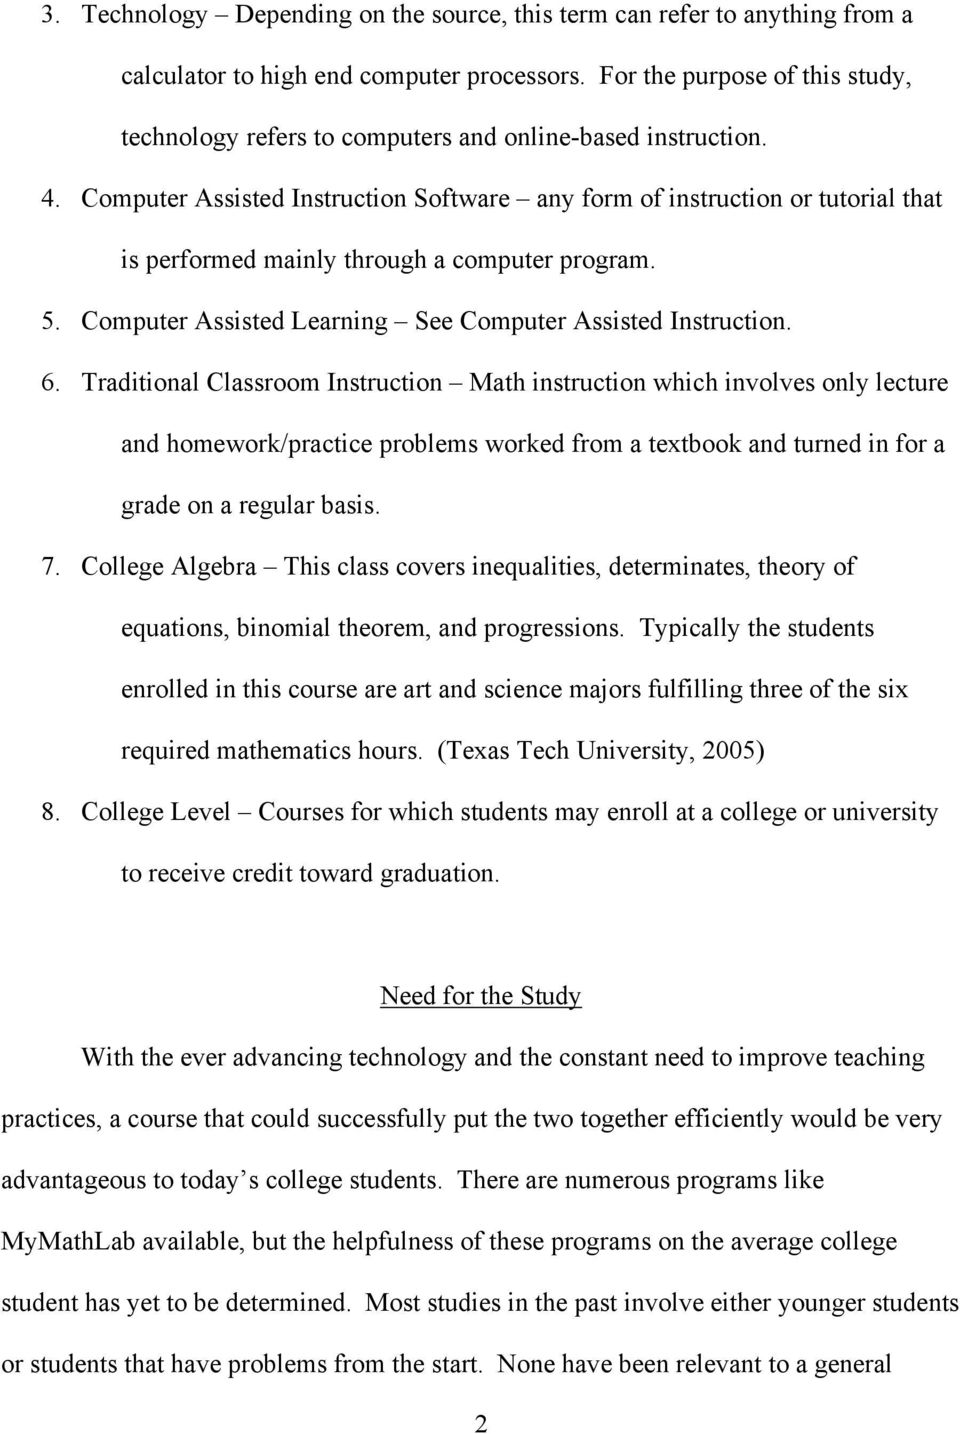 The Effects Of Computer Assisted Instruction On College Algebra